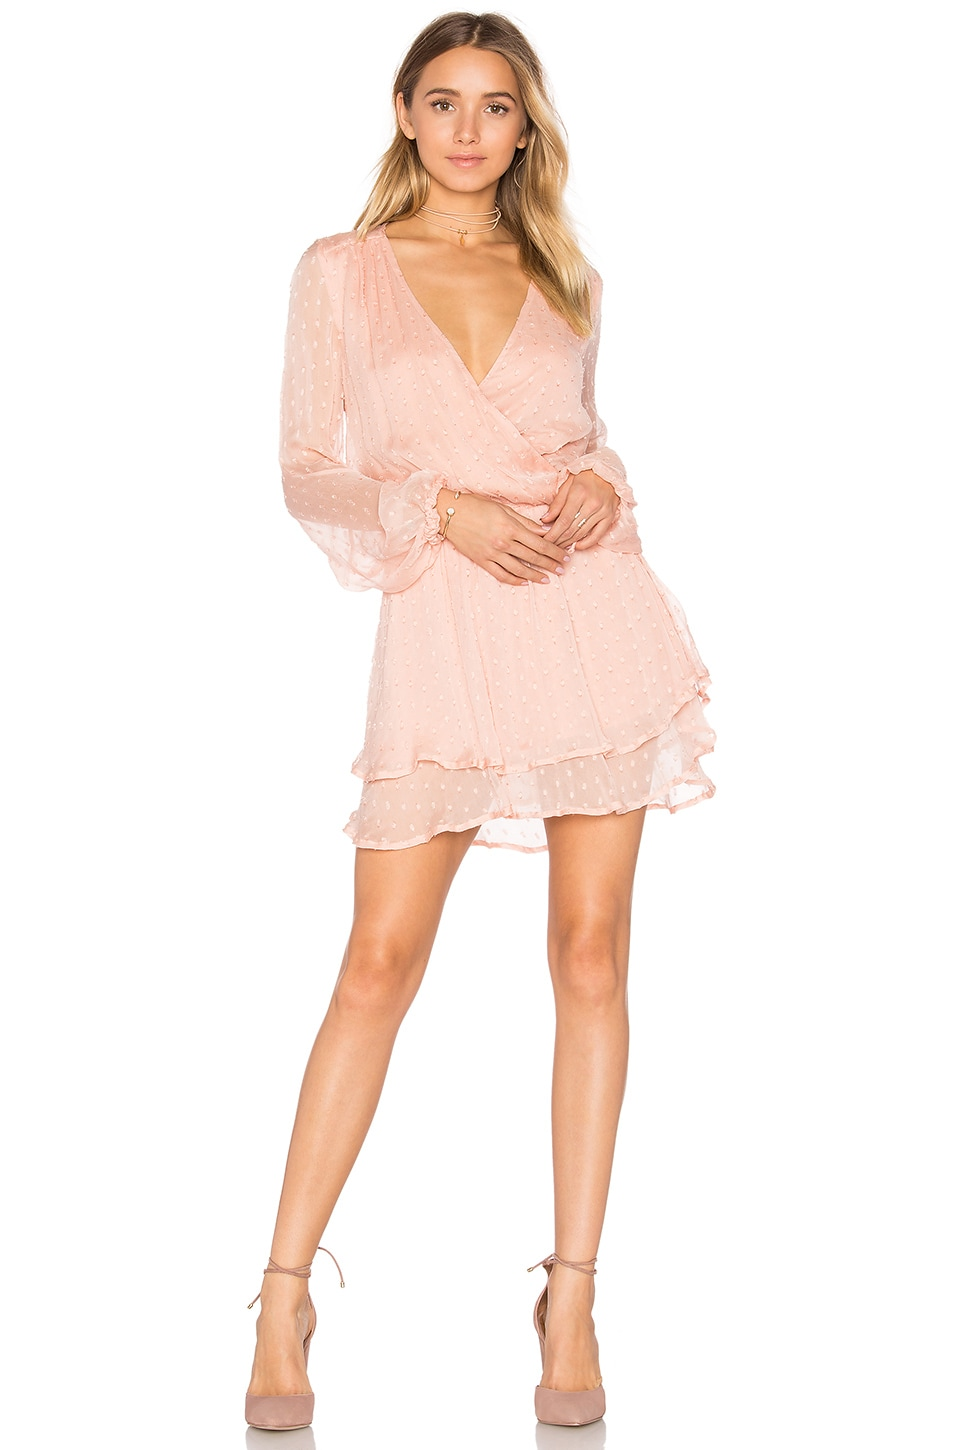 Free People Daliah Mini Dress in Peach